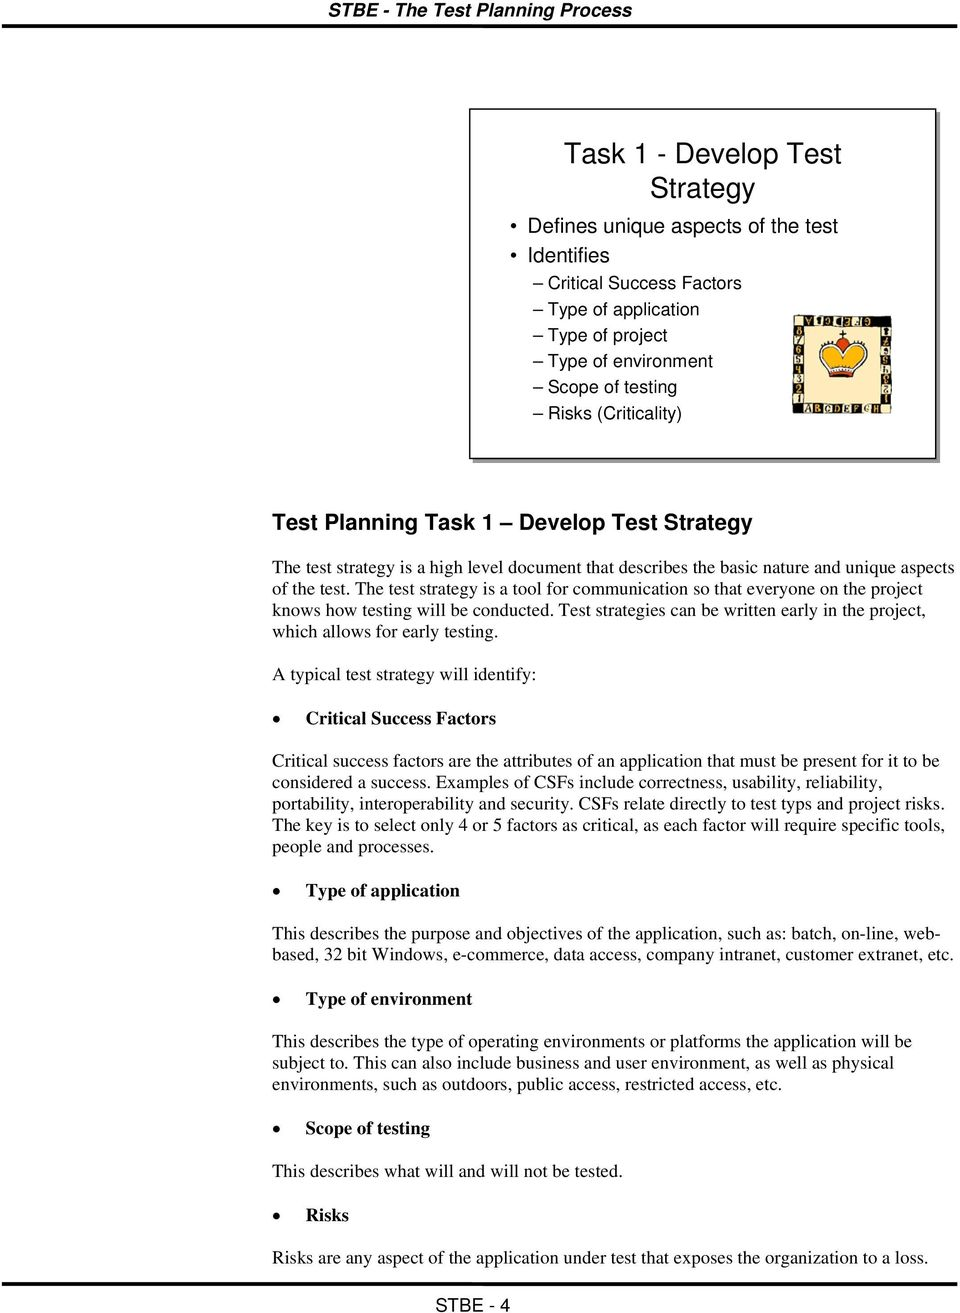 The test strategy is a tool for communication so that everyone on the project knows how testing will be conducted. Test strategies can be written early in the project, which allows for early testing.